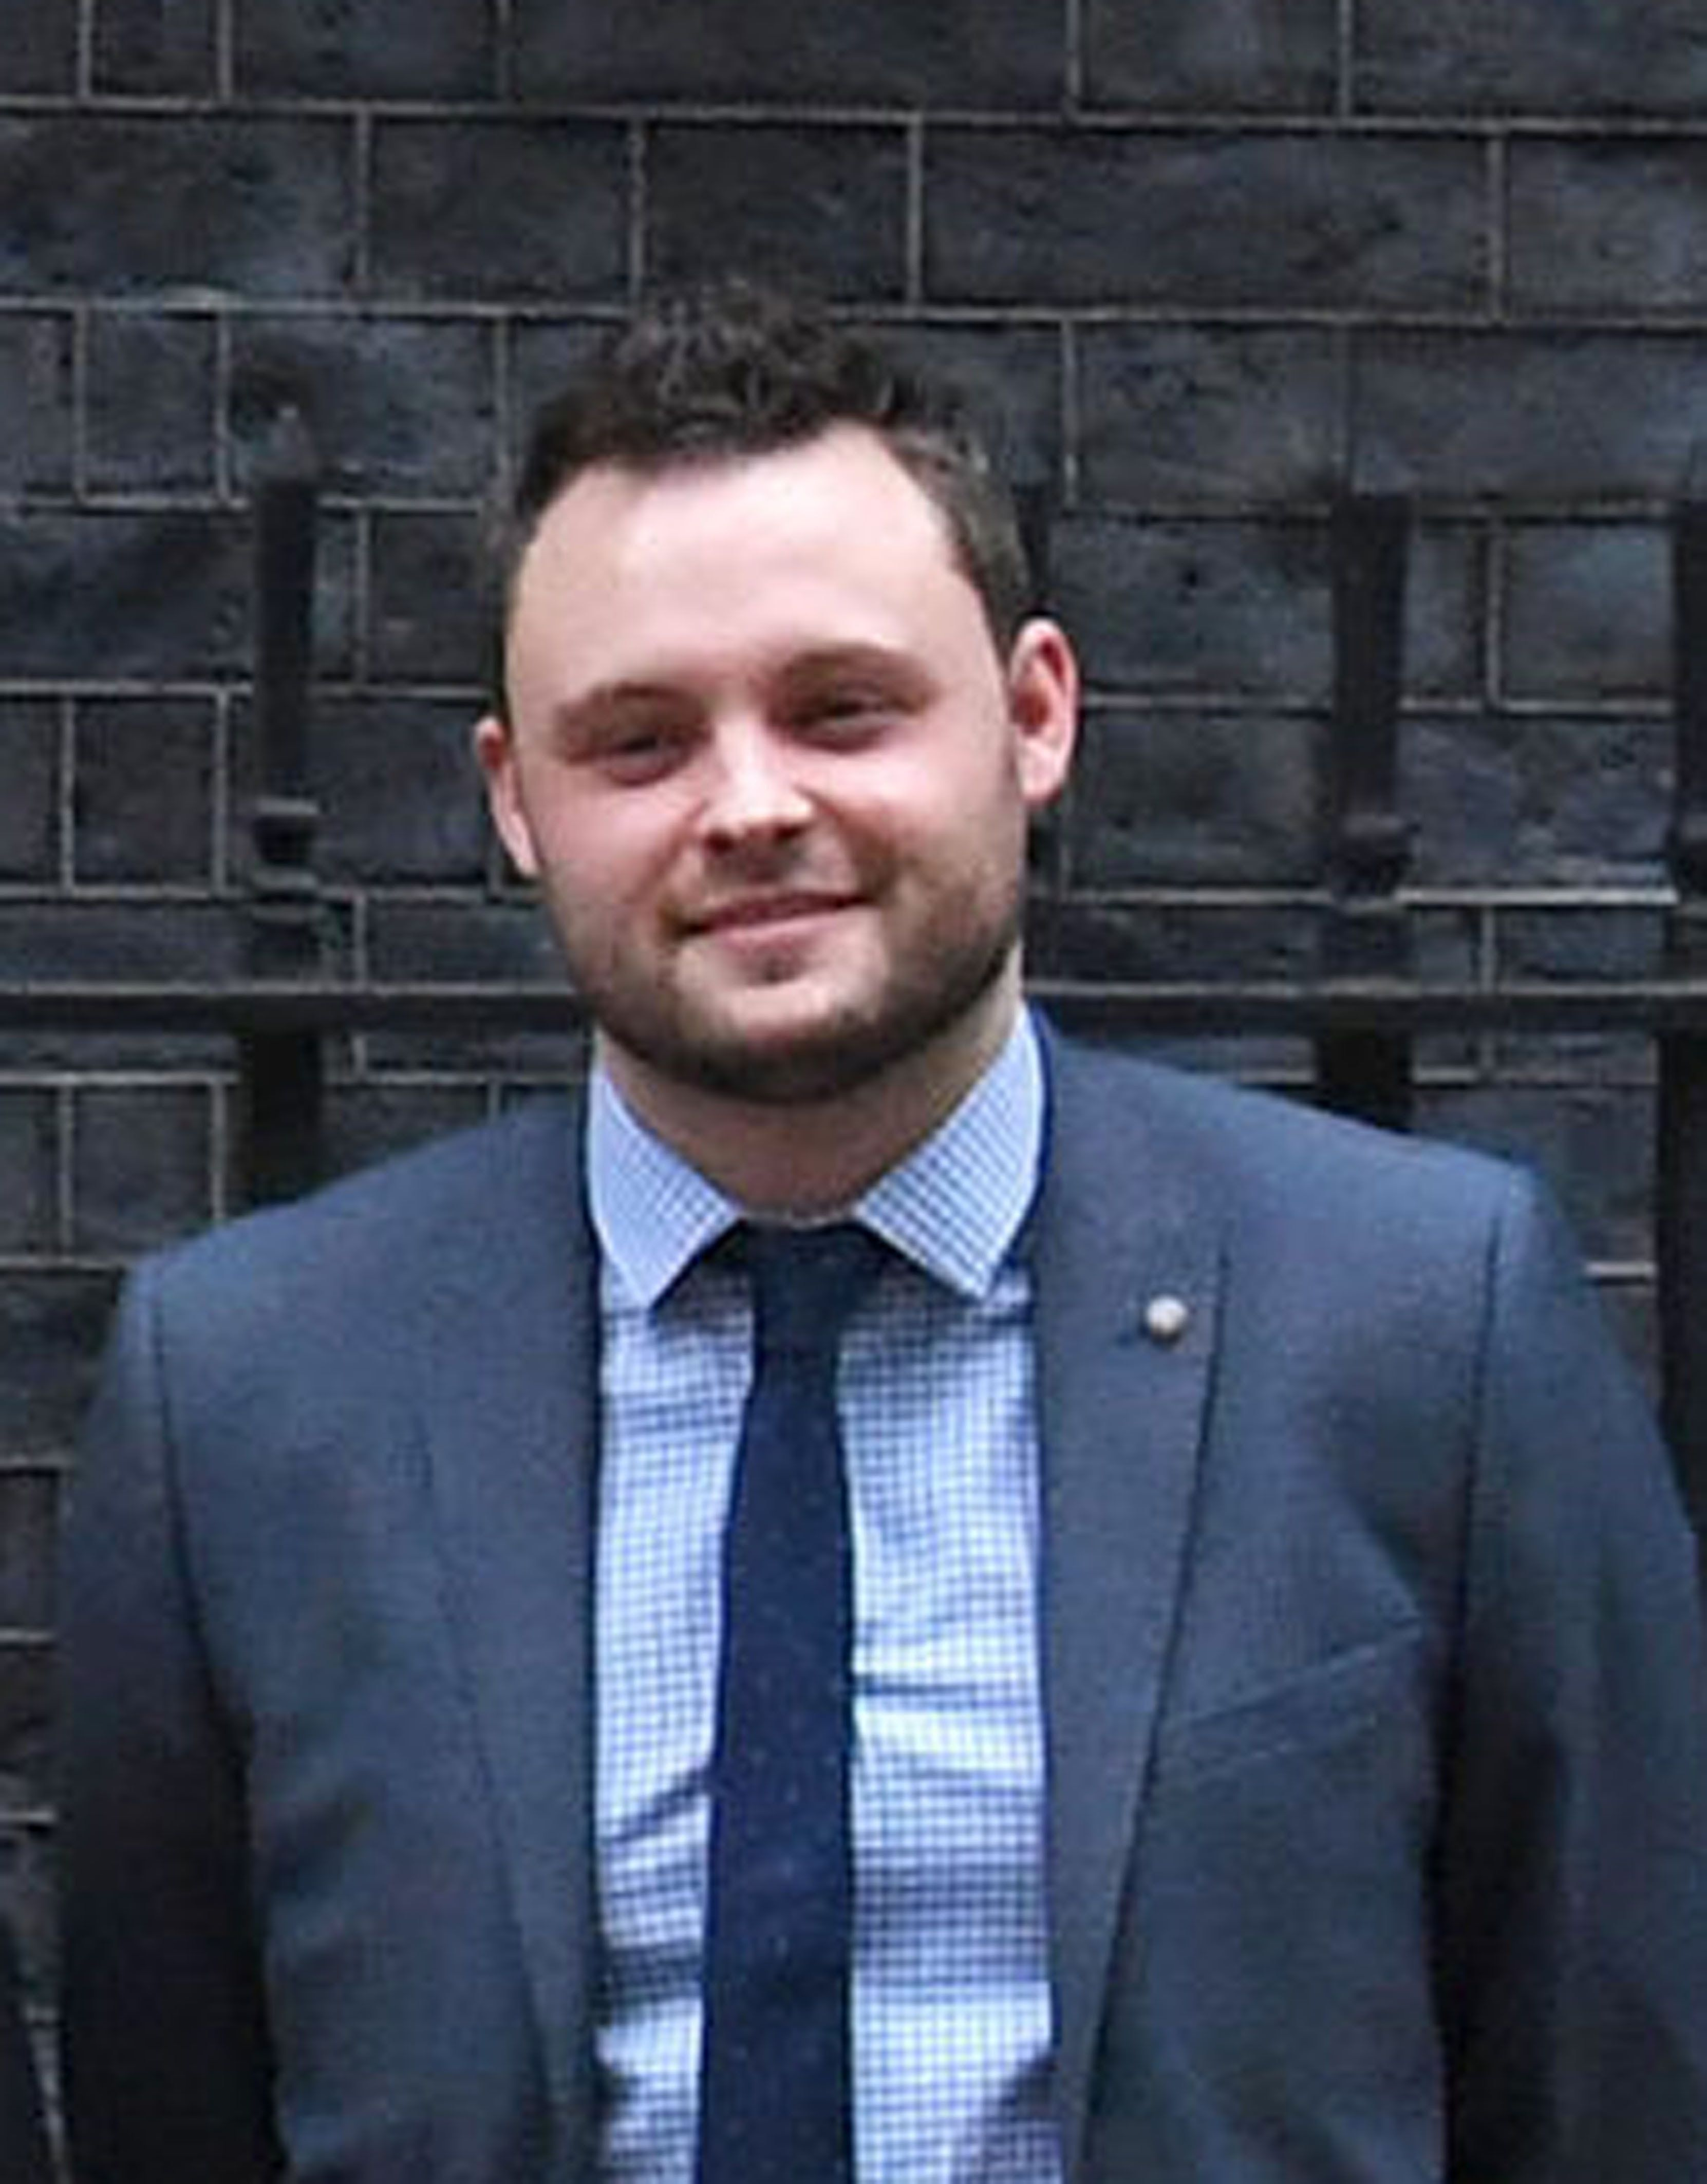 Rich Tory Donors Pay Ben Bradley's Legal Bills Over Corbyn Spy